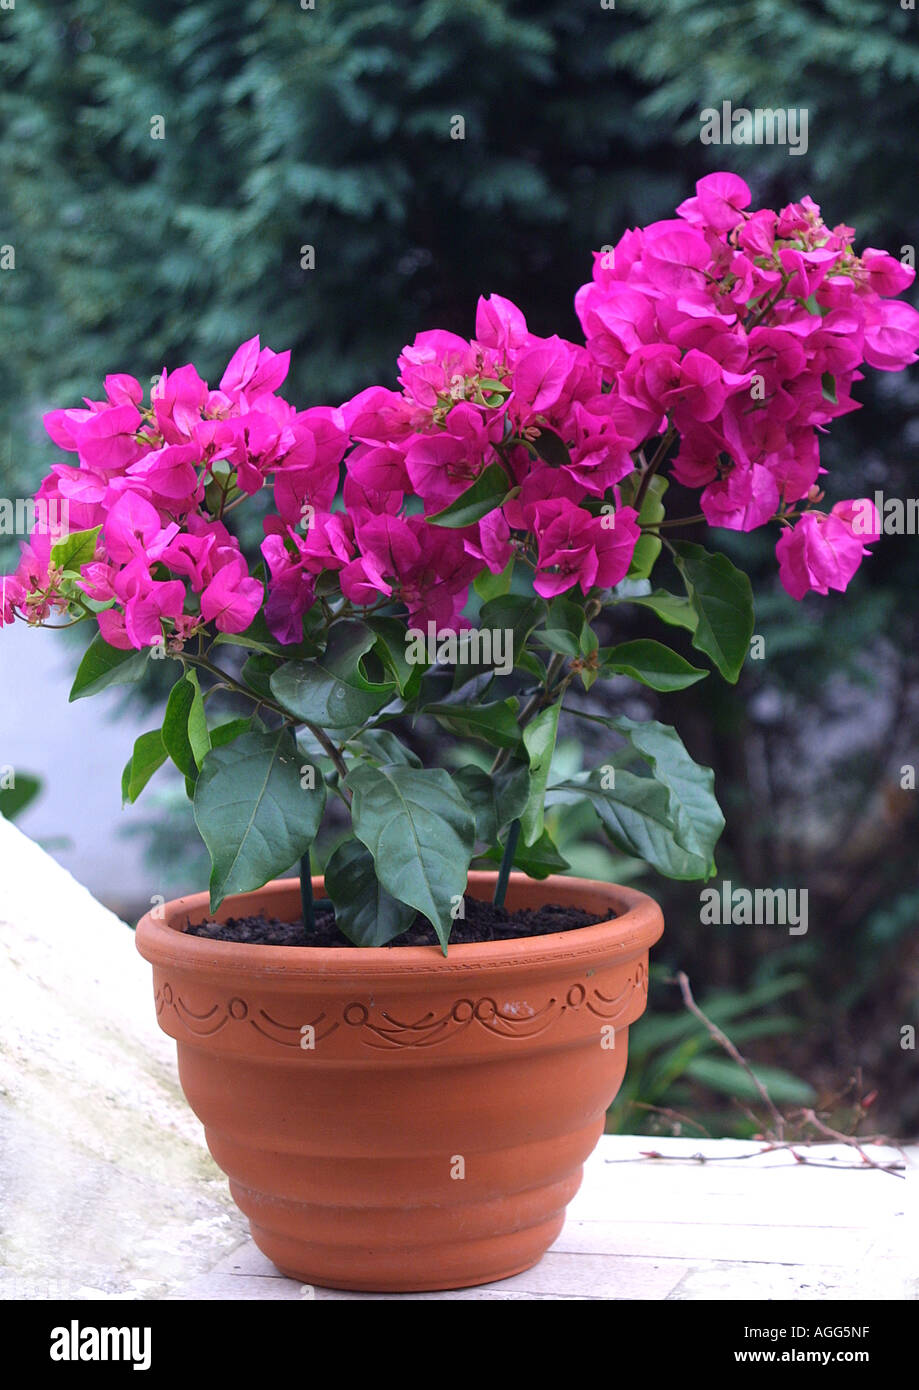 bougainvillea plant in pots images galleries with a bite. Black Bedroom Furniture Sets. Home Design Ideas